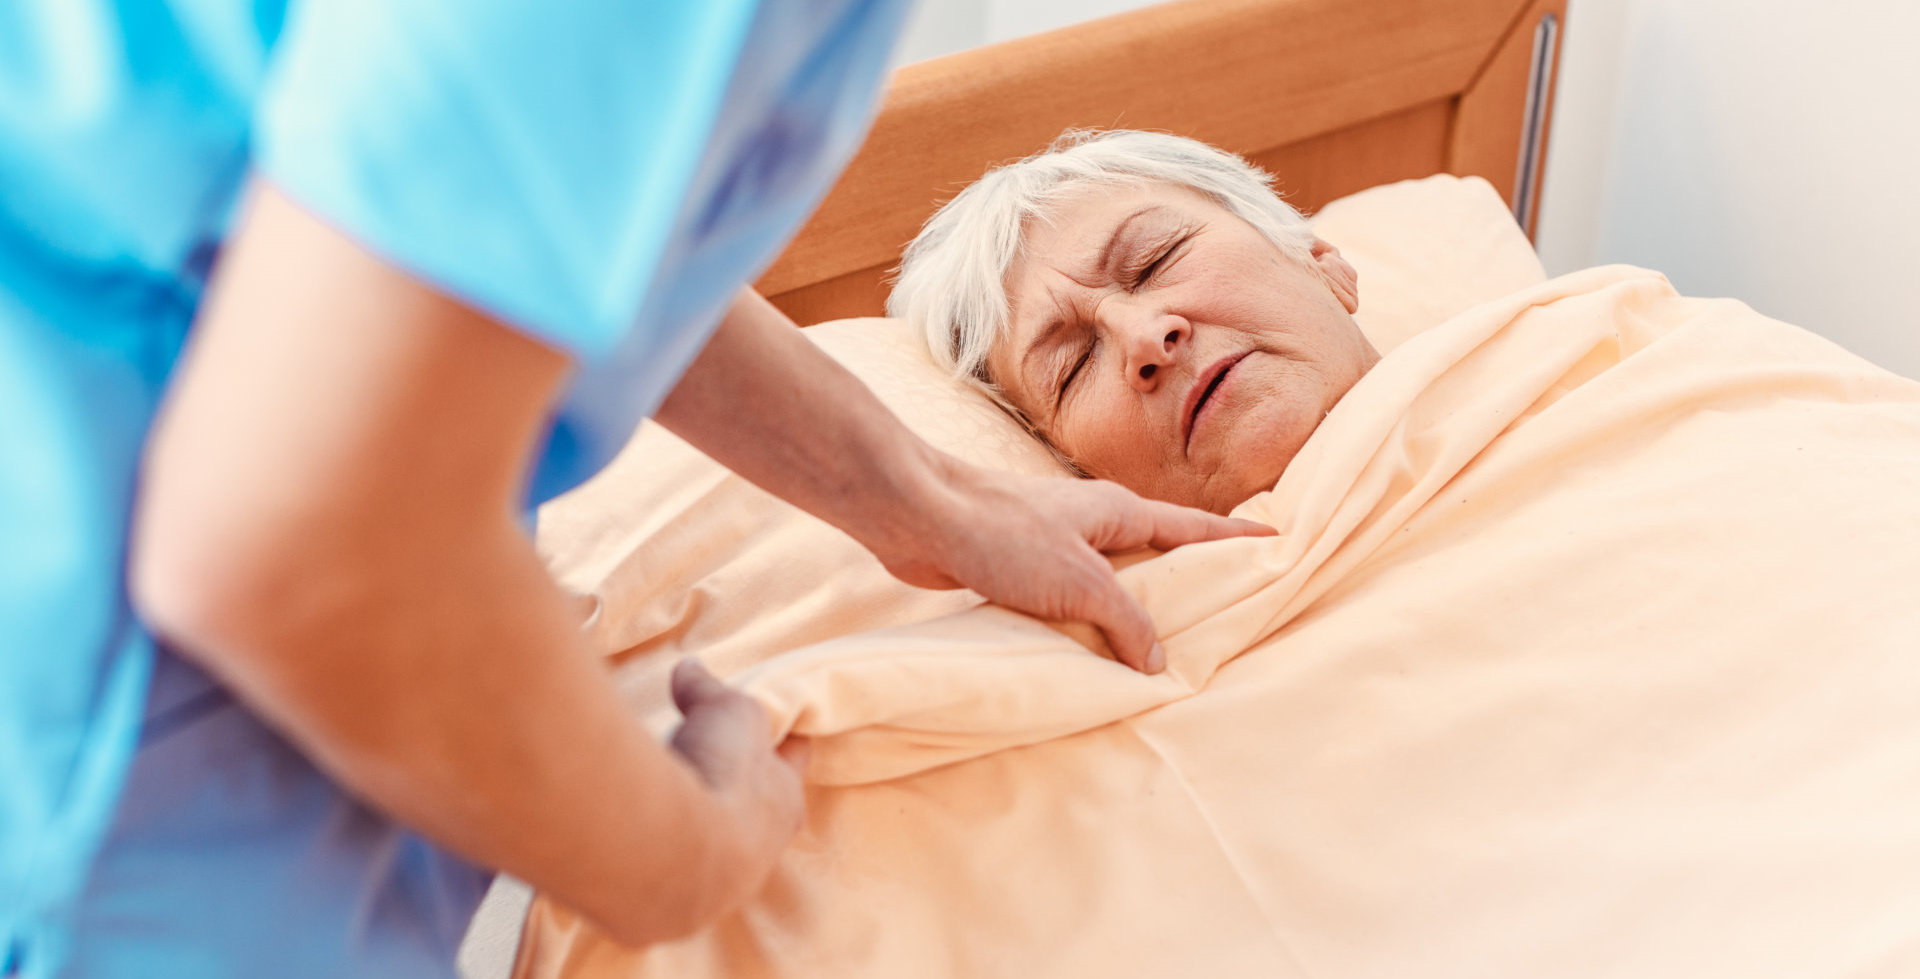 Caregiver pulling blanket over sleeping senior